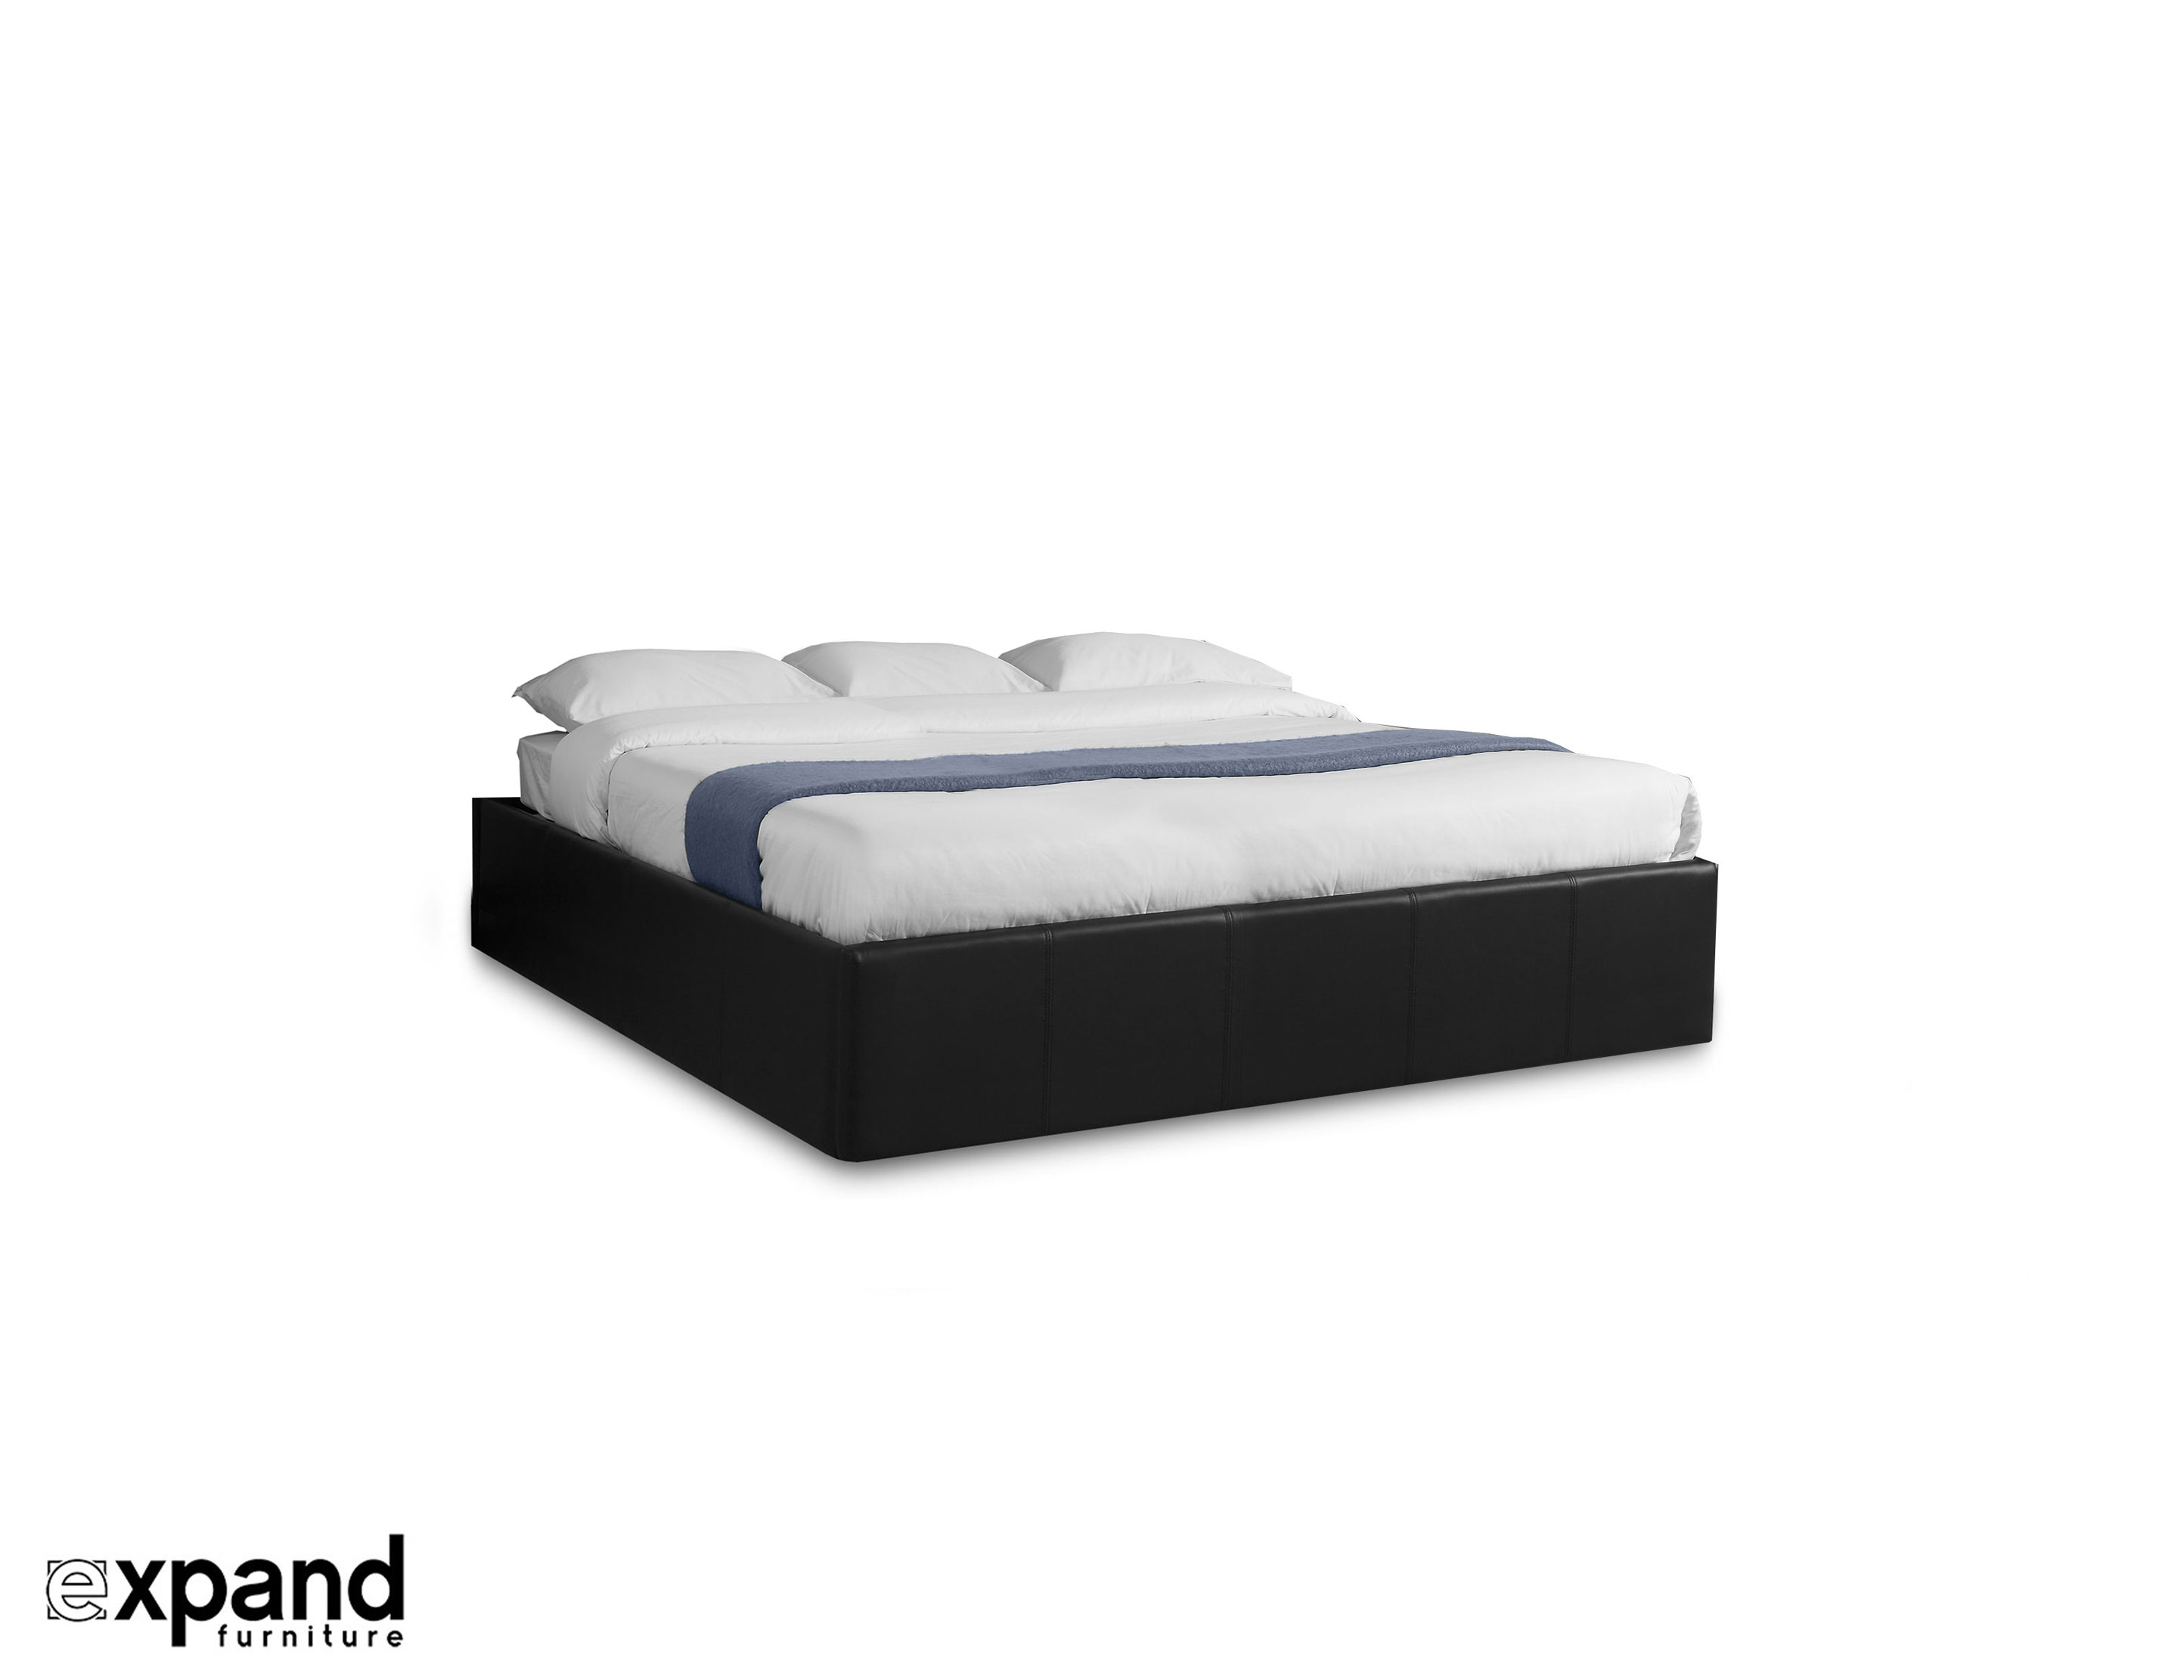 The Reveal King Sidelifting Storage Bed Is The Largest Of All The Side  Lifting Beds And Offers 50% More Storage Than A Conventional Storage Bed